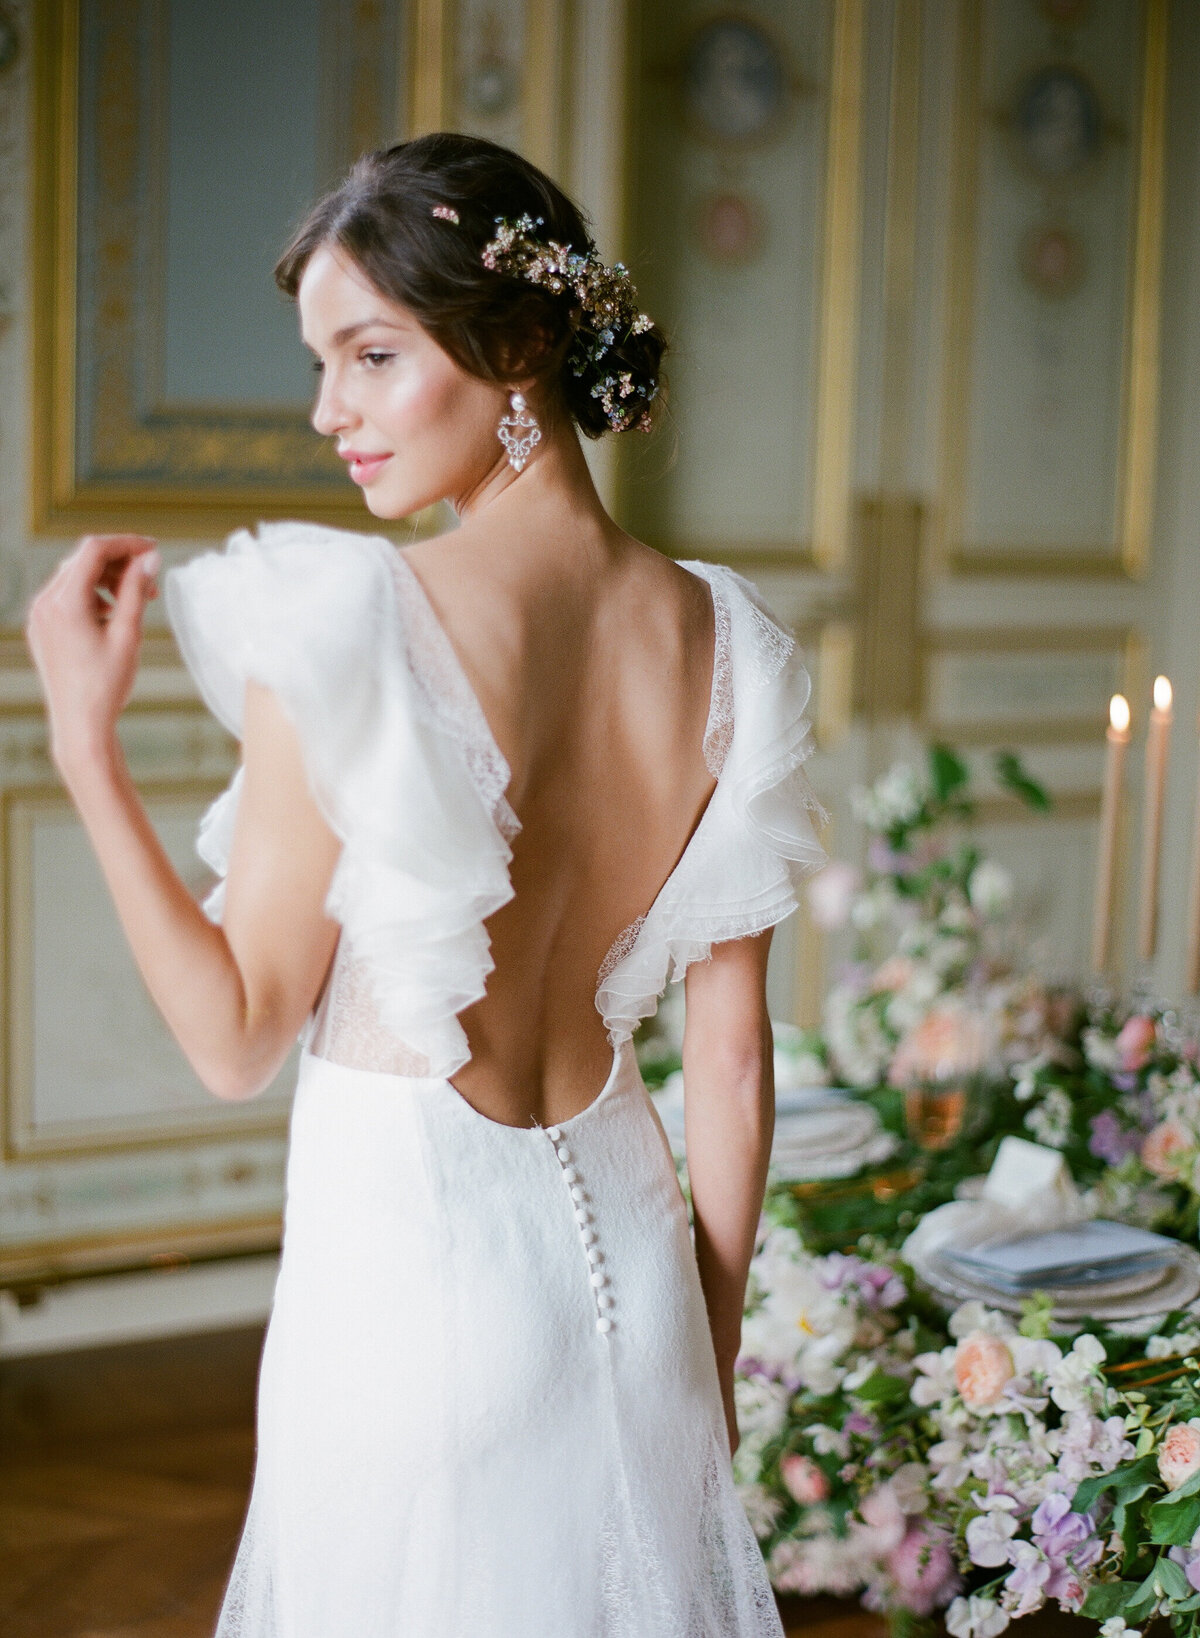 Wedding-Inspiration-Shangri-La-Paris-102